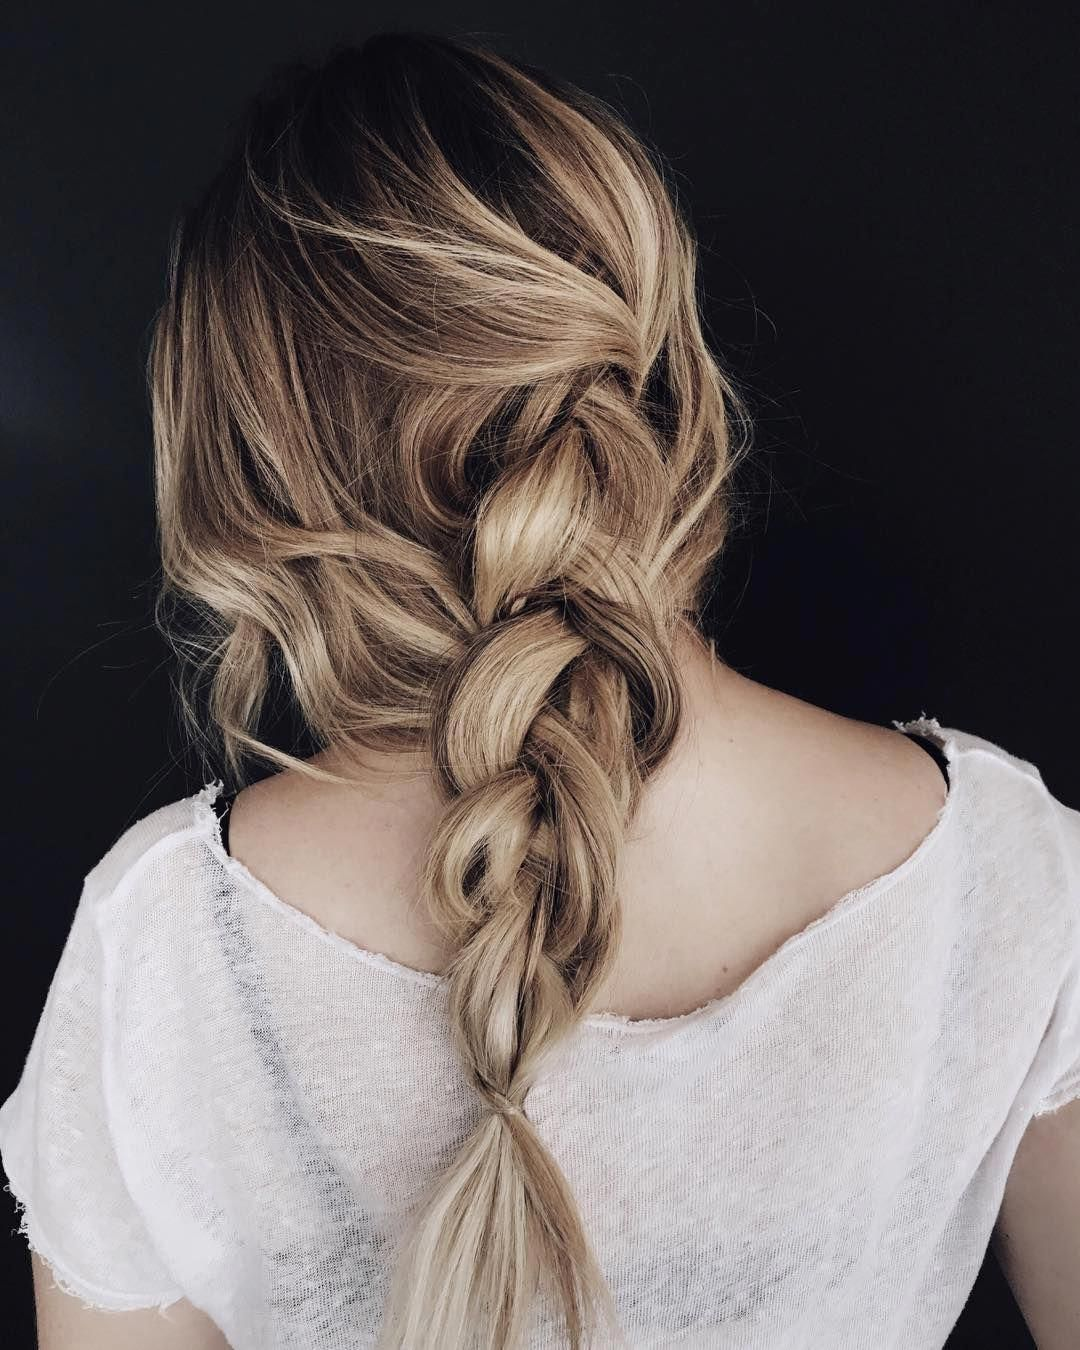 40 Cool Braids To Steal The Show With This Summer Cool Braid Hairstyles Hair Styles Long Hair Styles